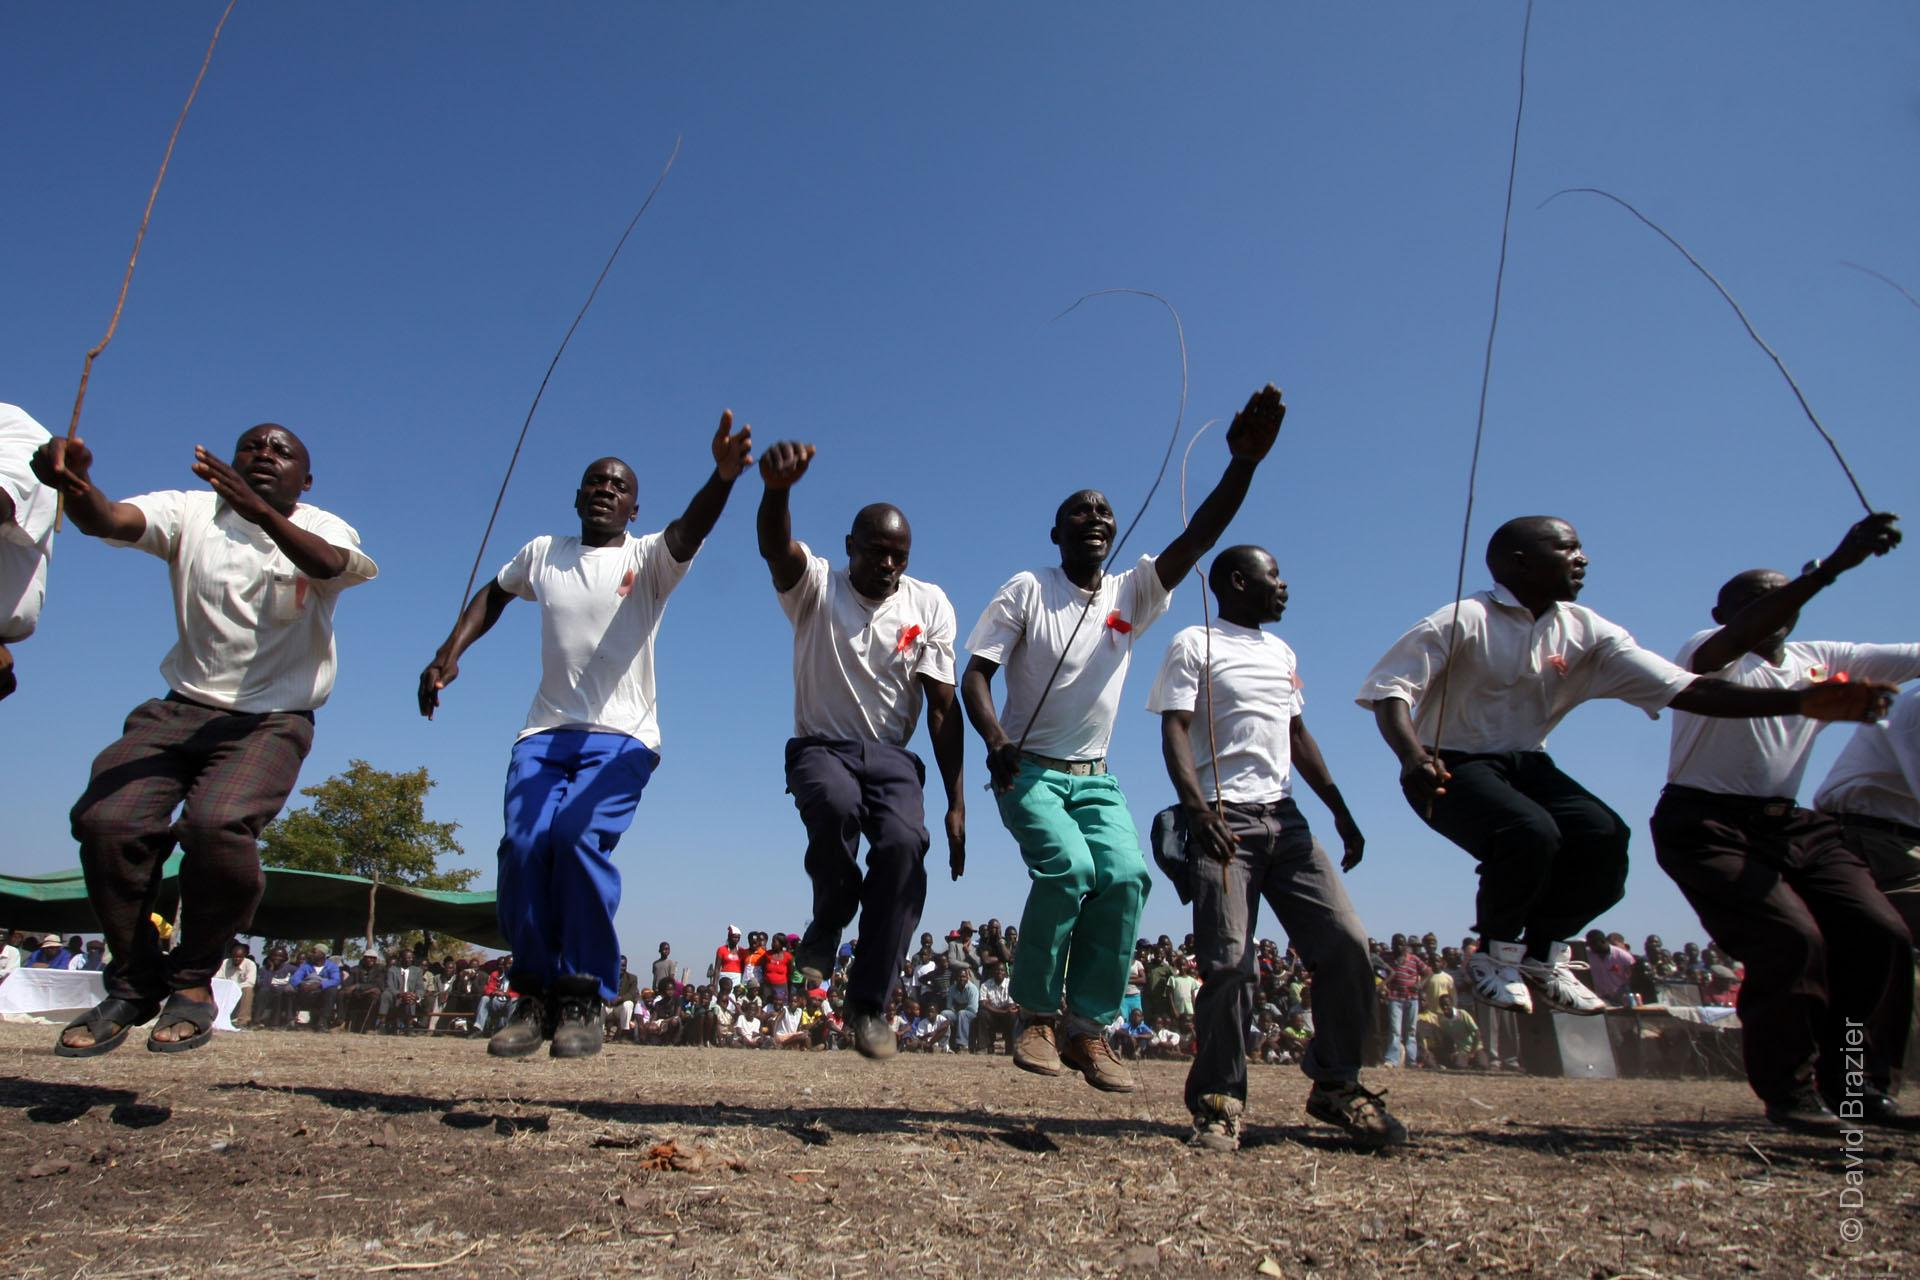 Shangaan men dancing with whips